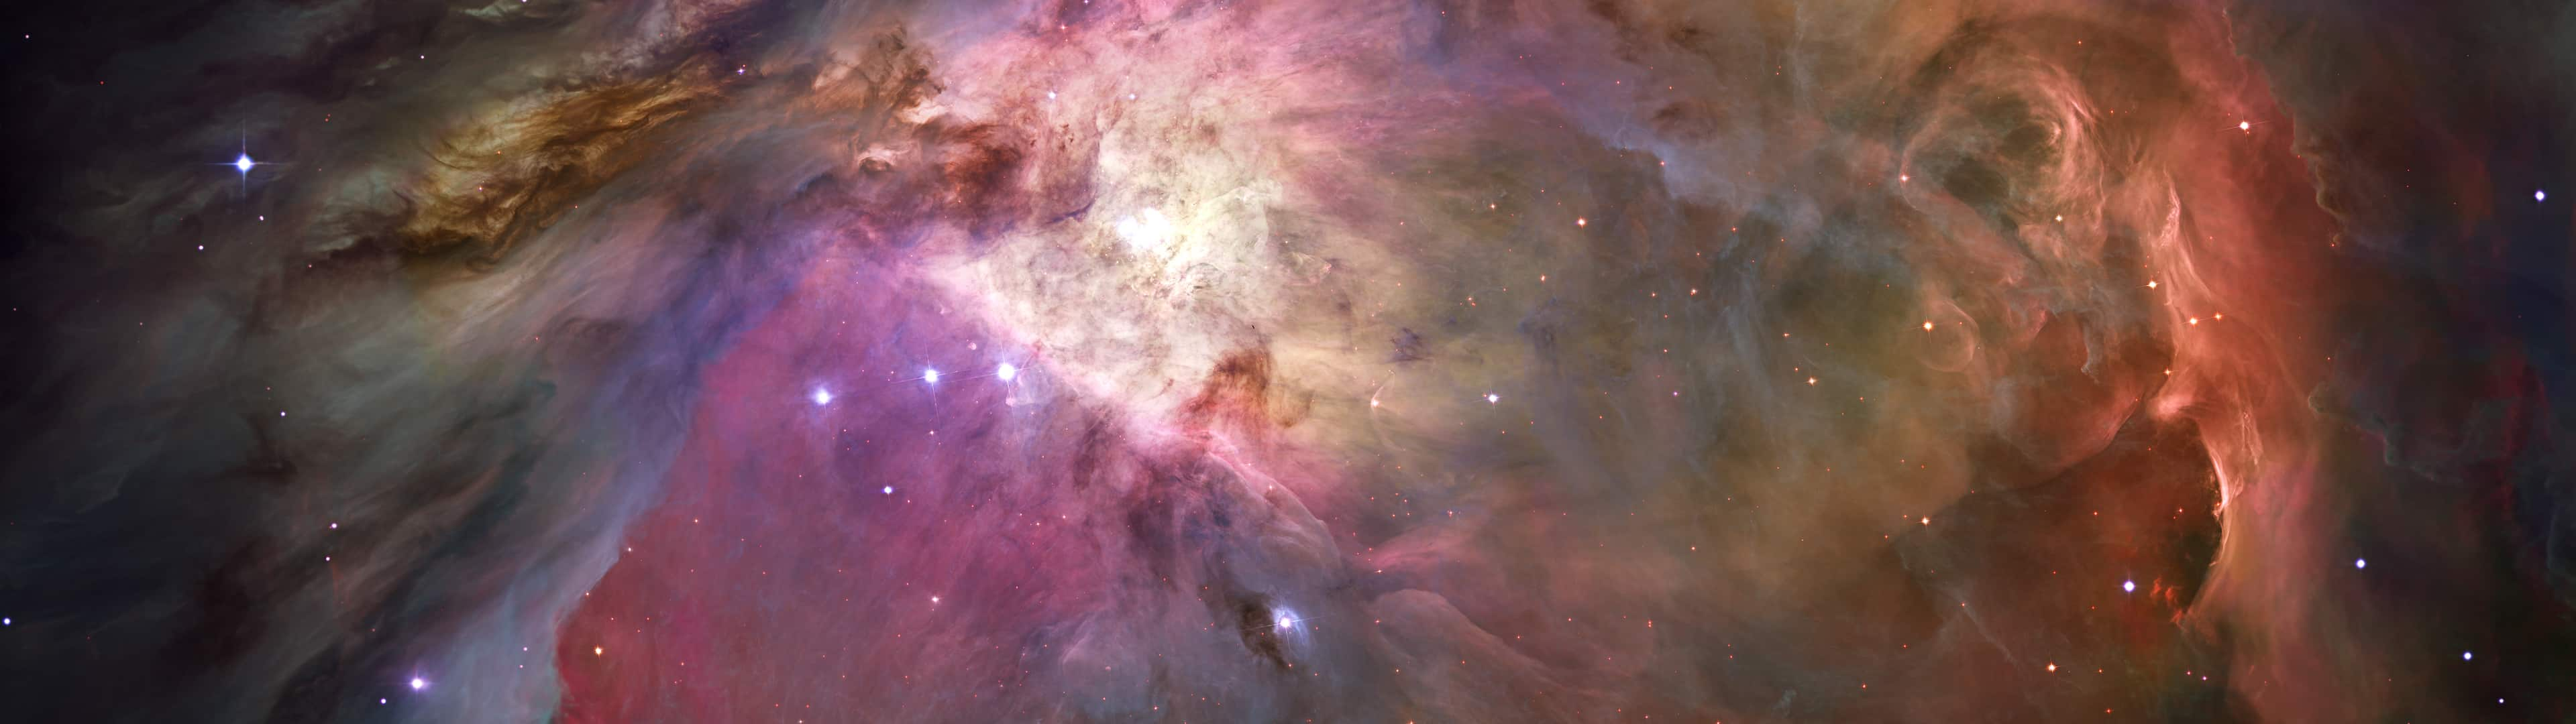 orion nebula dual monitora wallpaper